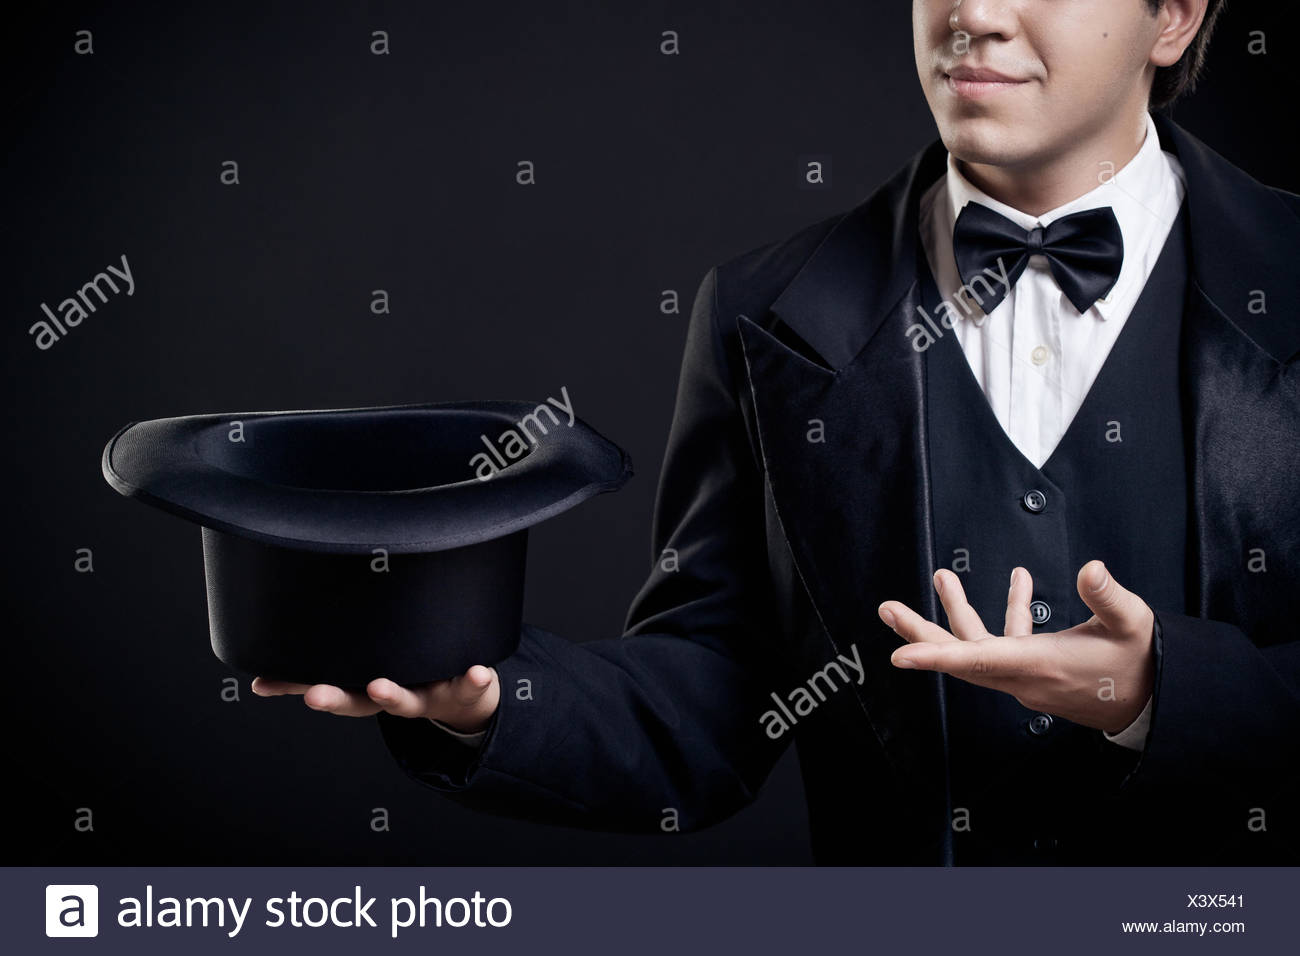 magician showing tricks with top hat isolated - Stock Image